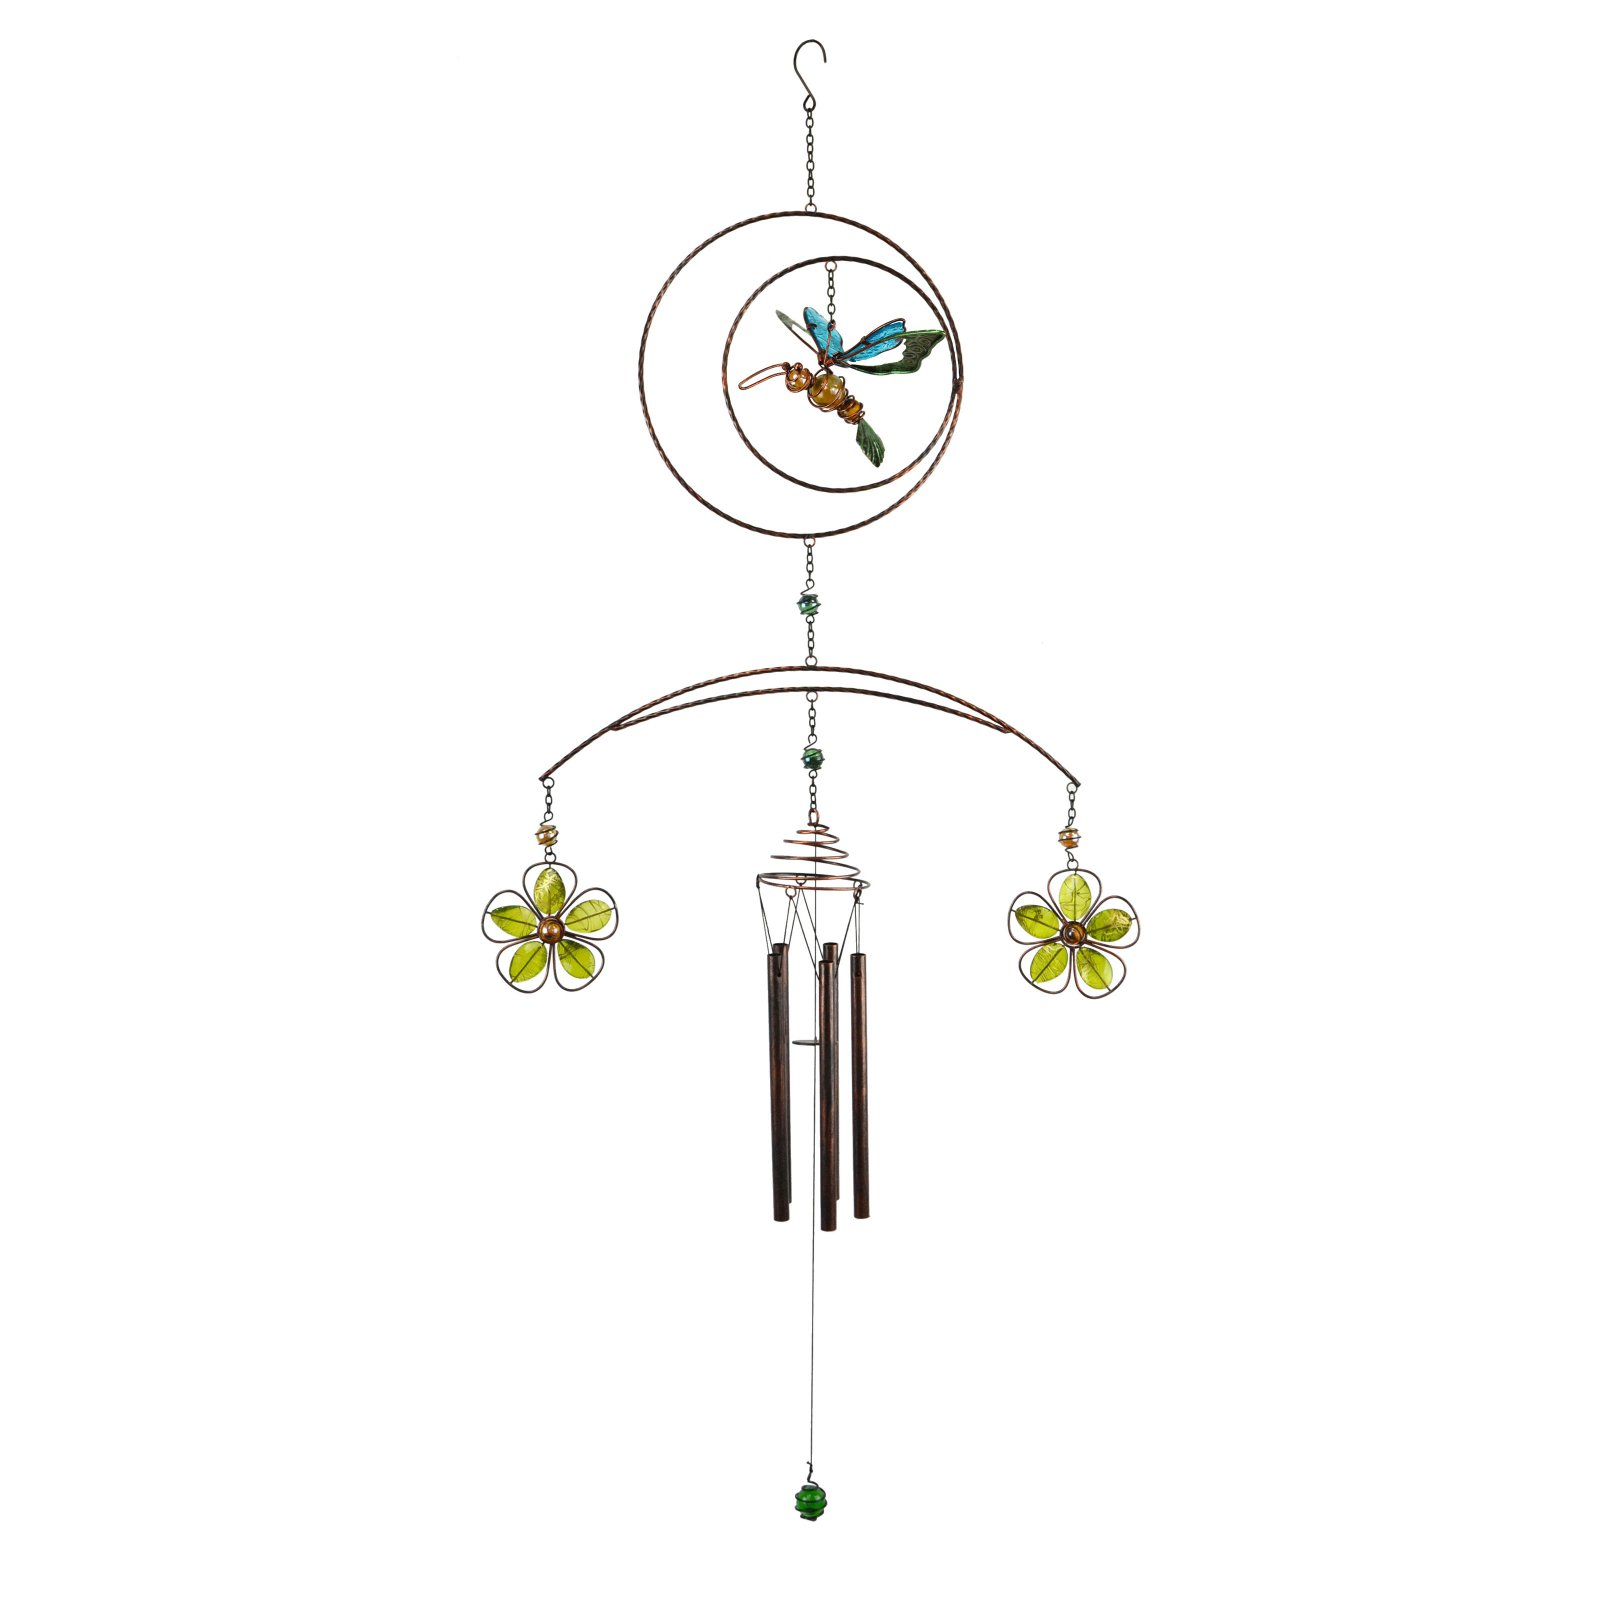 Red Carpet Studios Balancing Dragonfly Wind Chime